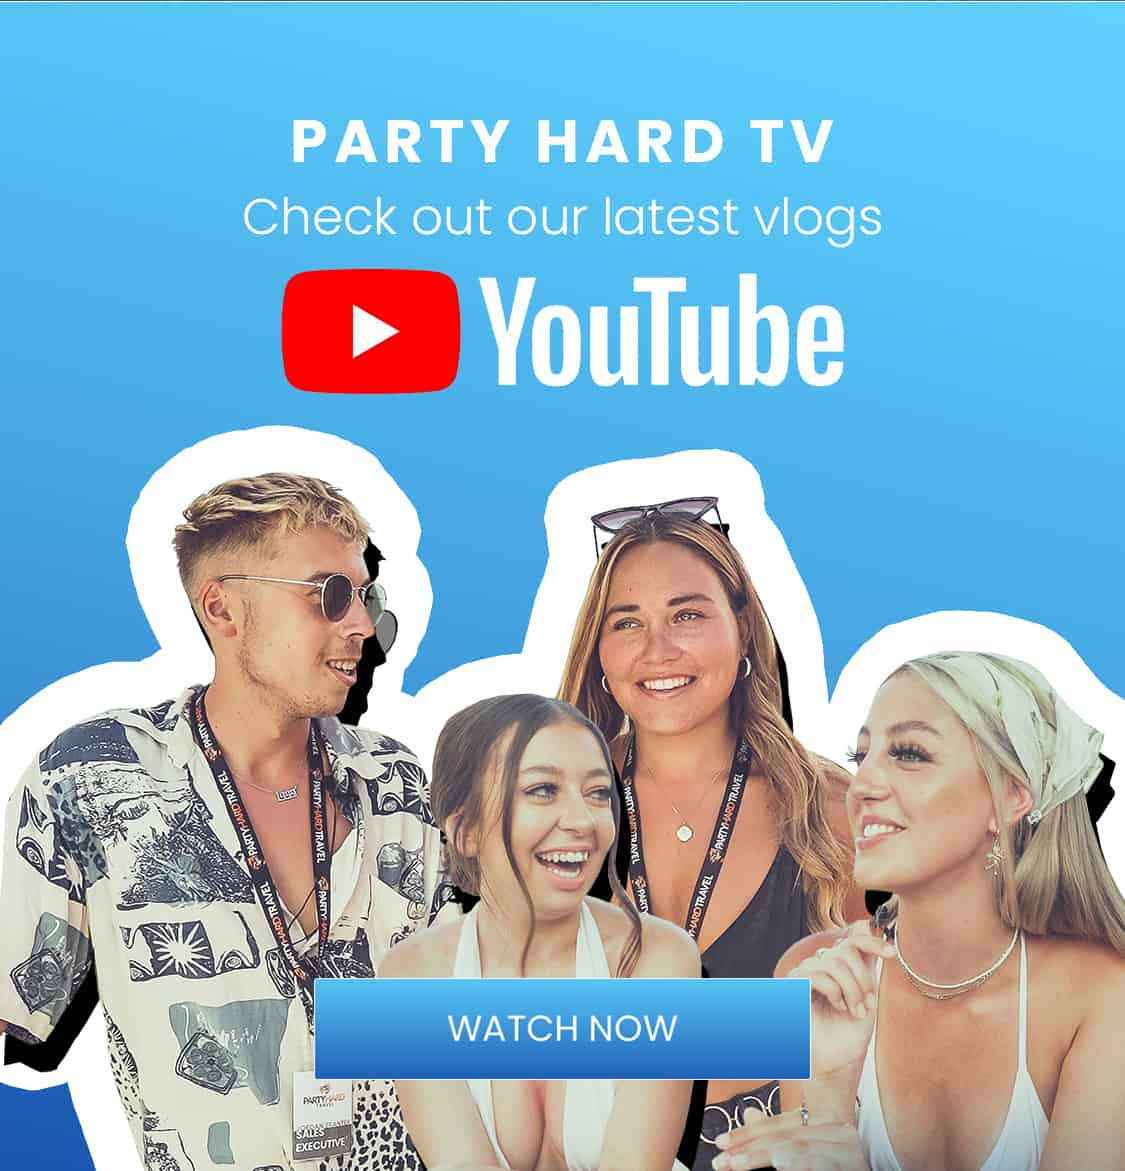 party hard tv mobile